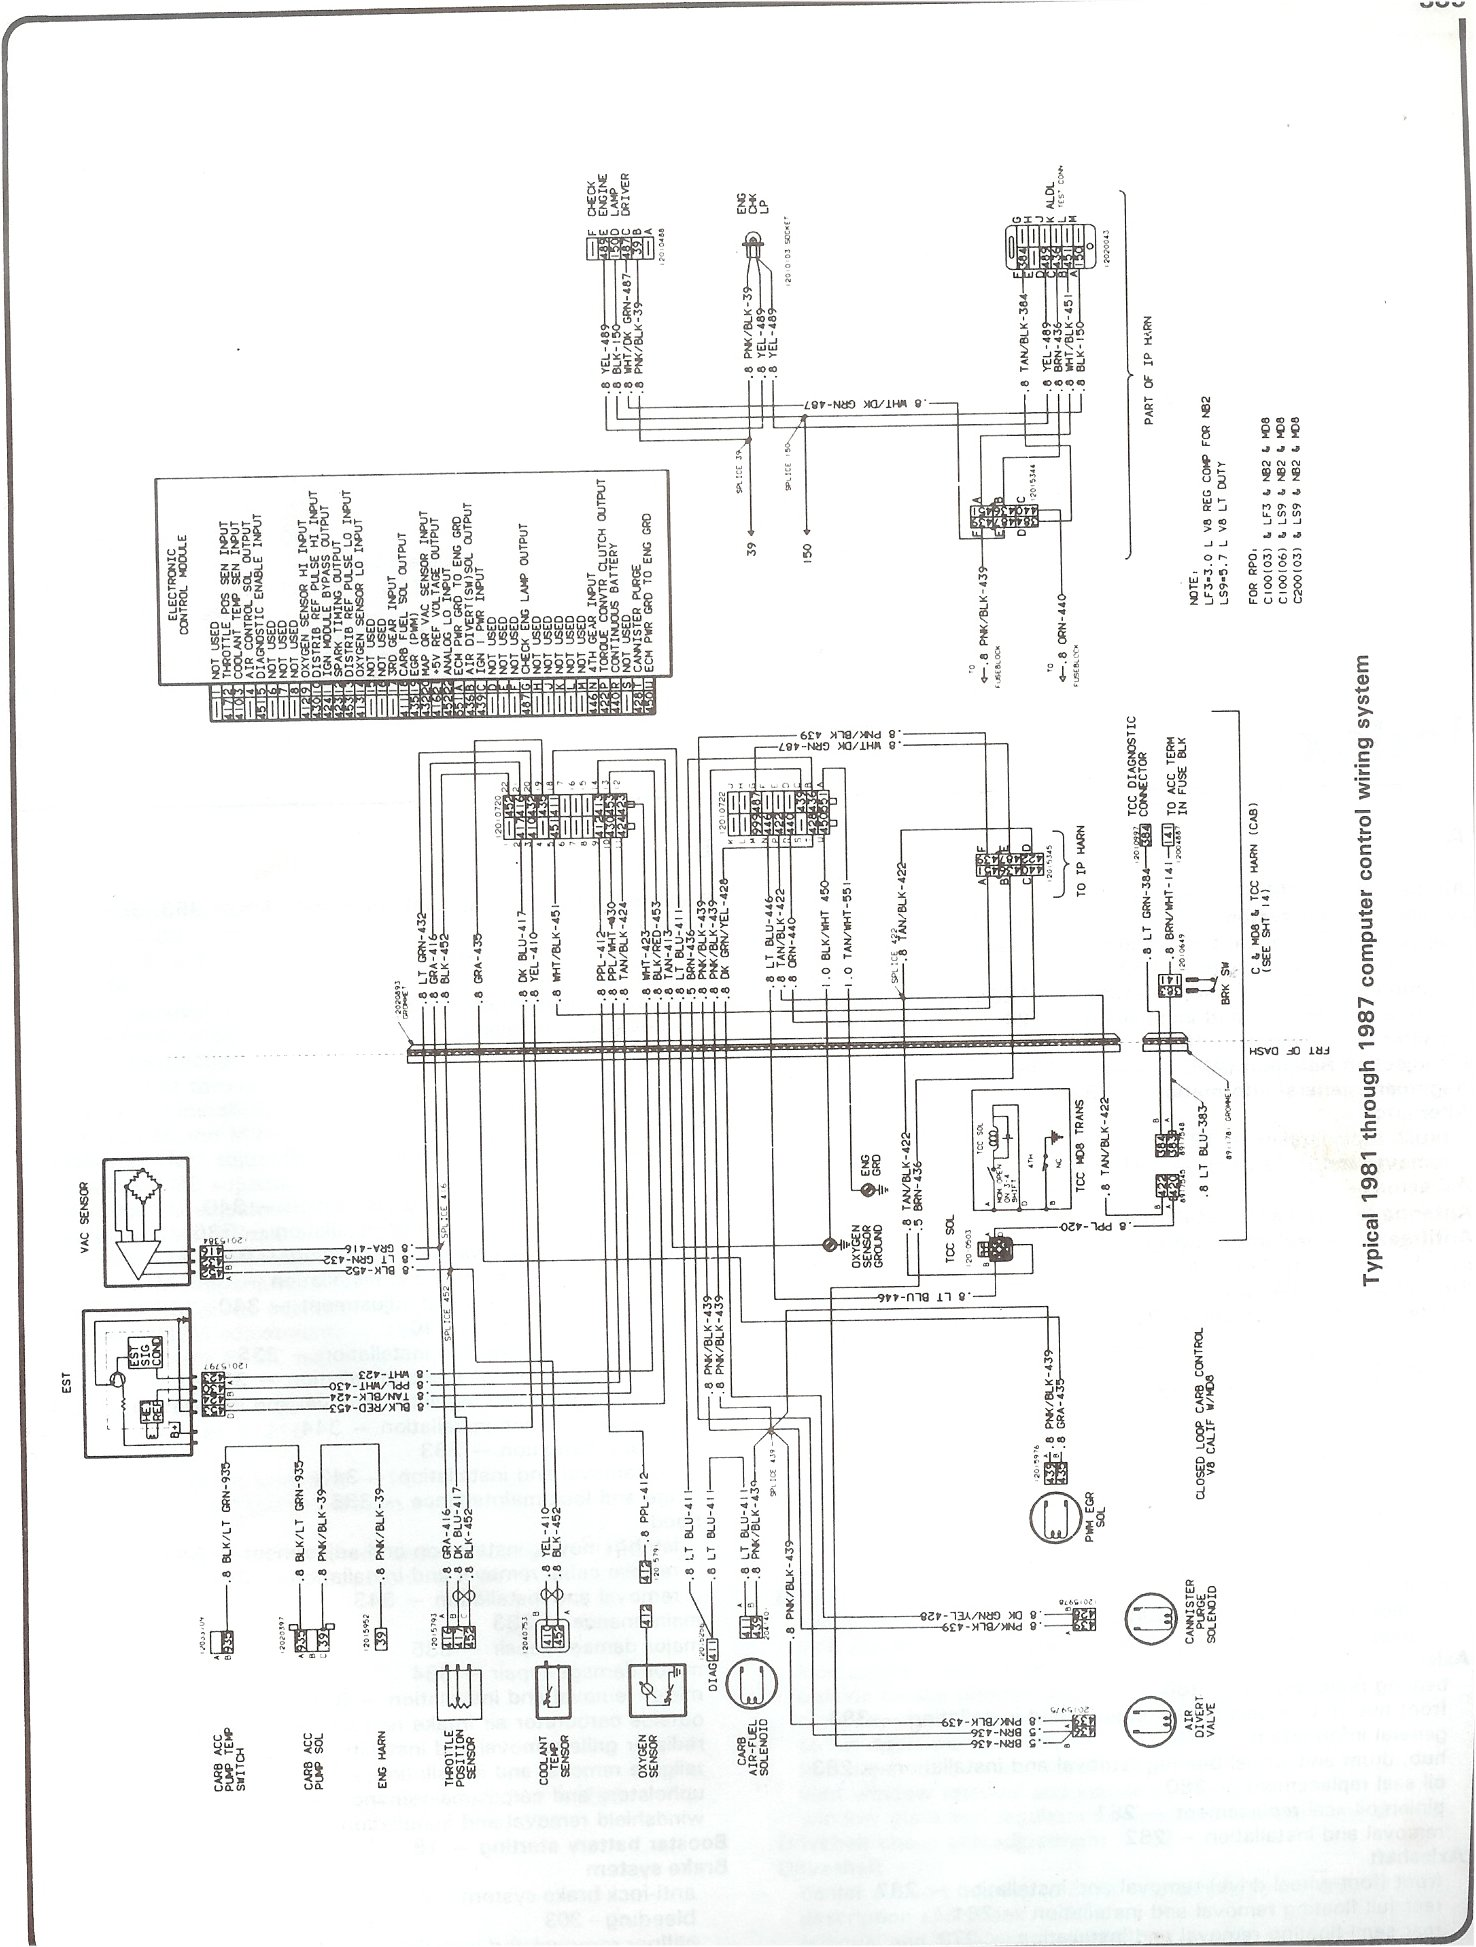 1976 Chevy Suburban Wiring Diagram Starting Know About John Deere 410g K5 Blazer Another Blog U2022 Rh Ok2 Infoservice Ru